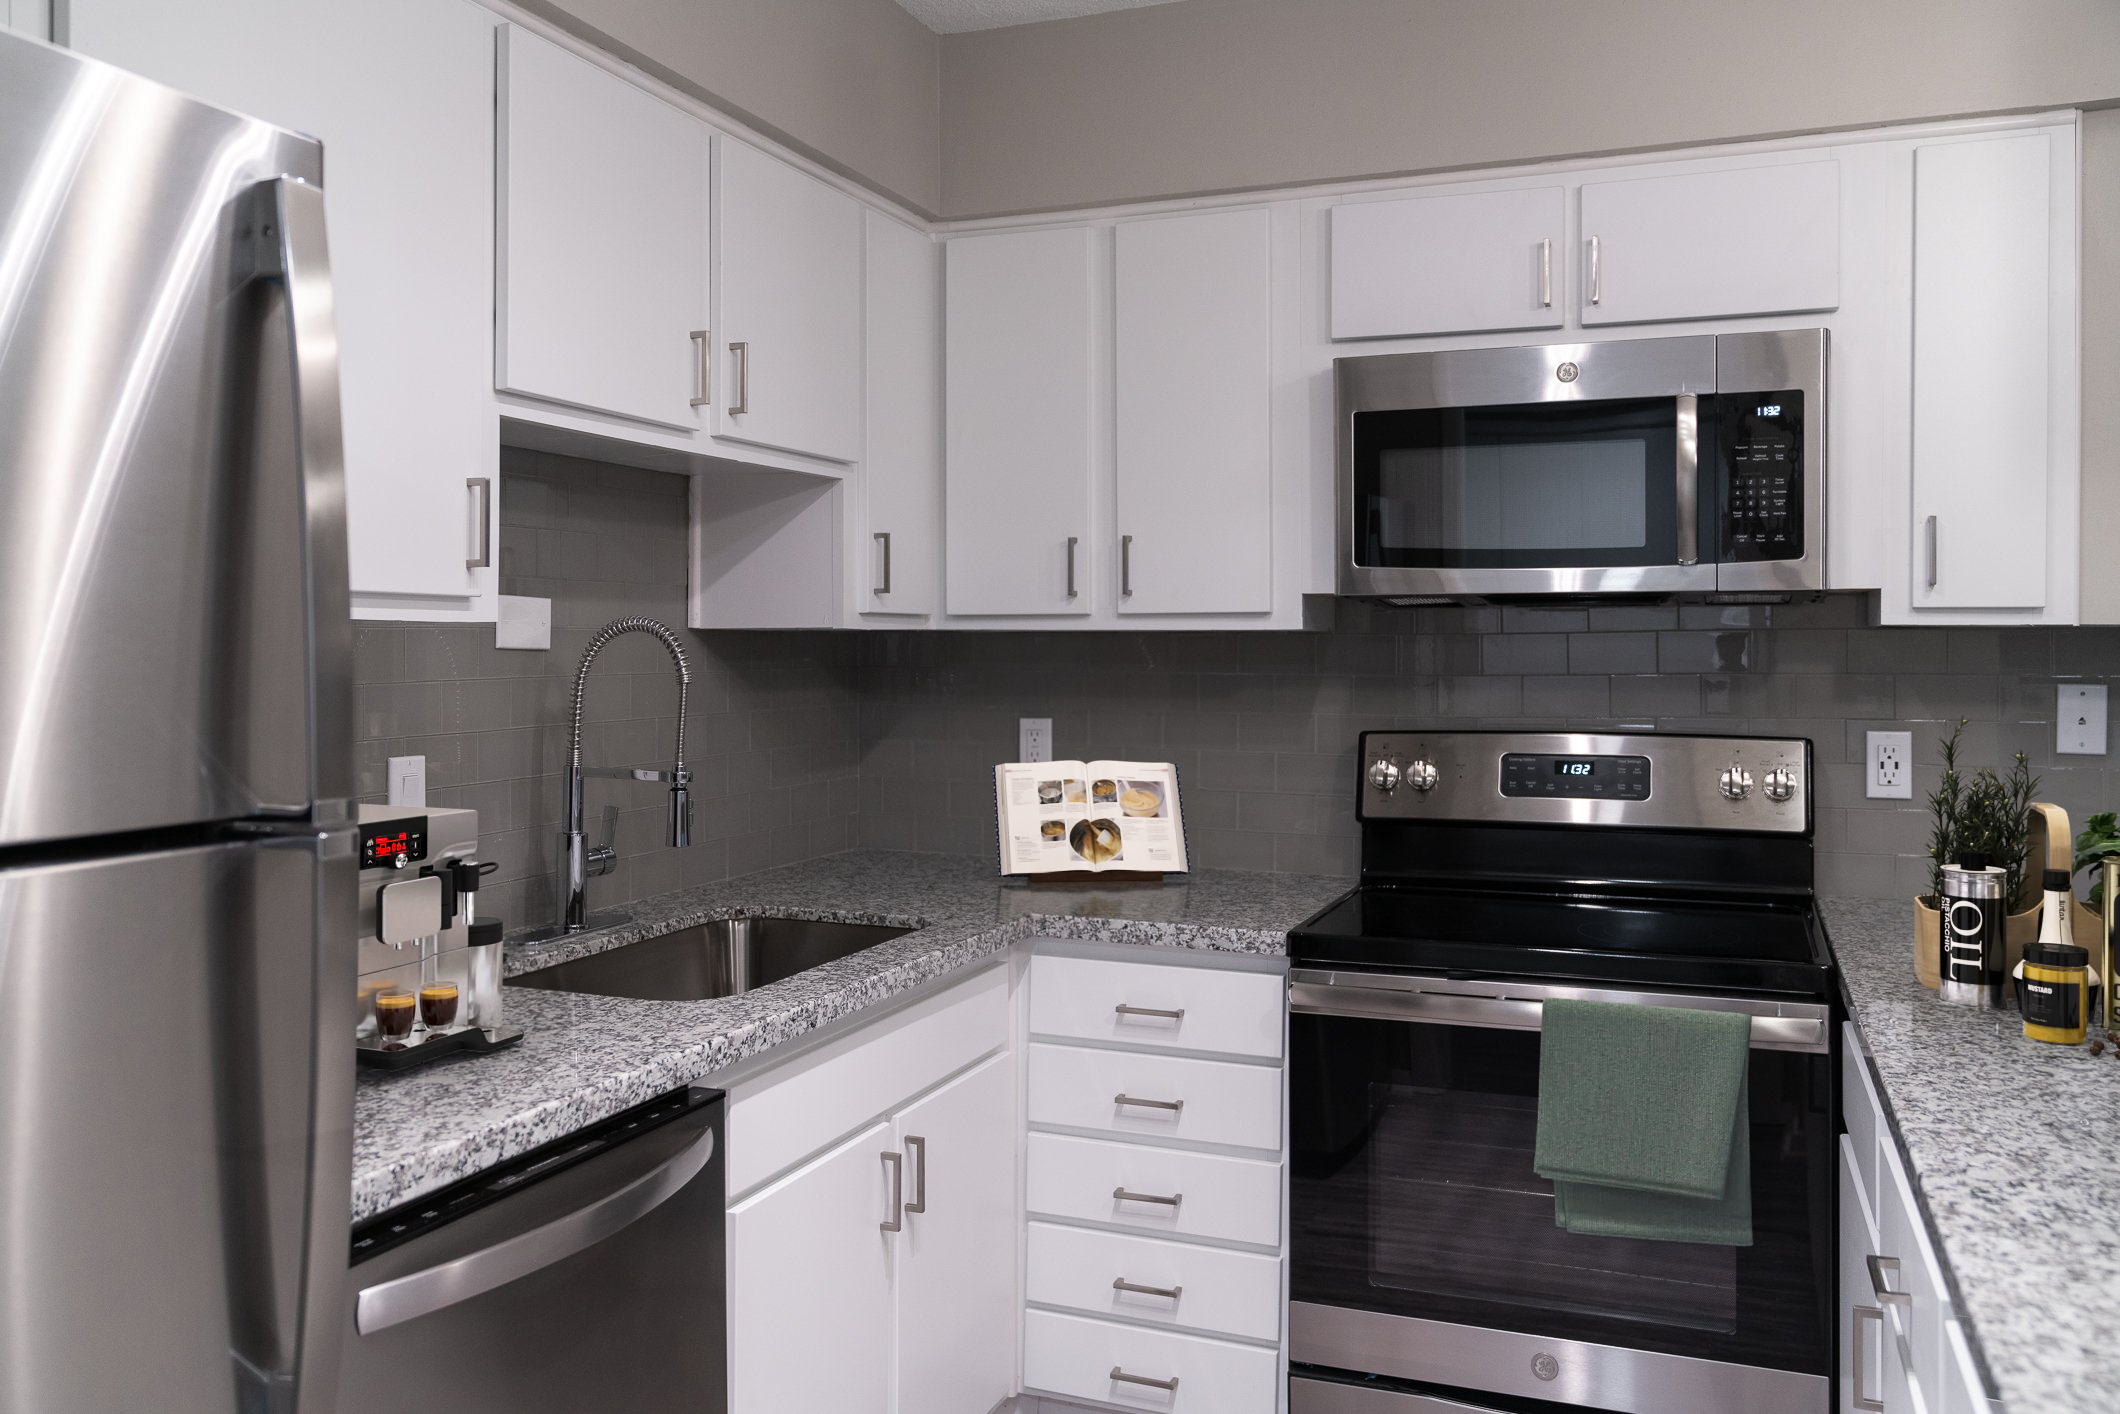 Upgraded Kitchen Finishes at View at Kessler Park Apartments in Dallas, TX